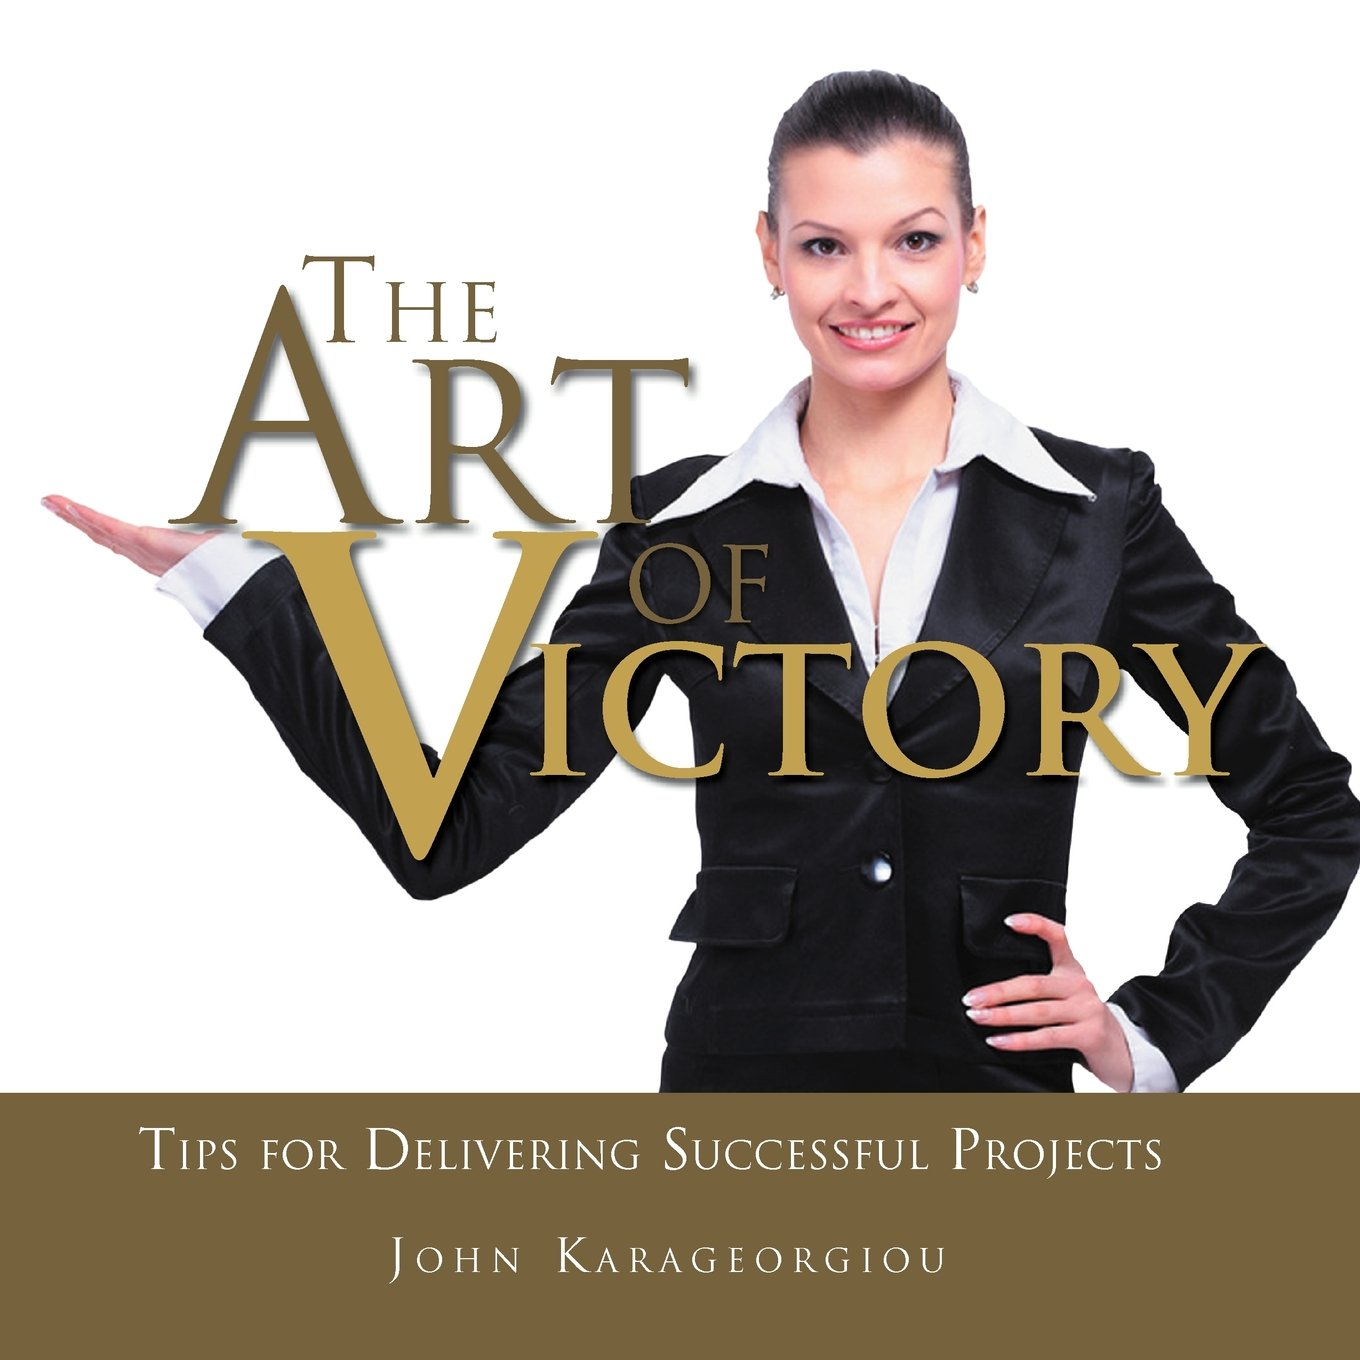 The Art of Victory: Tips for Delivering Successful Projects PDF